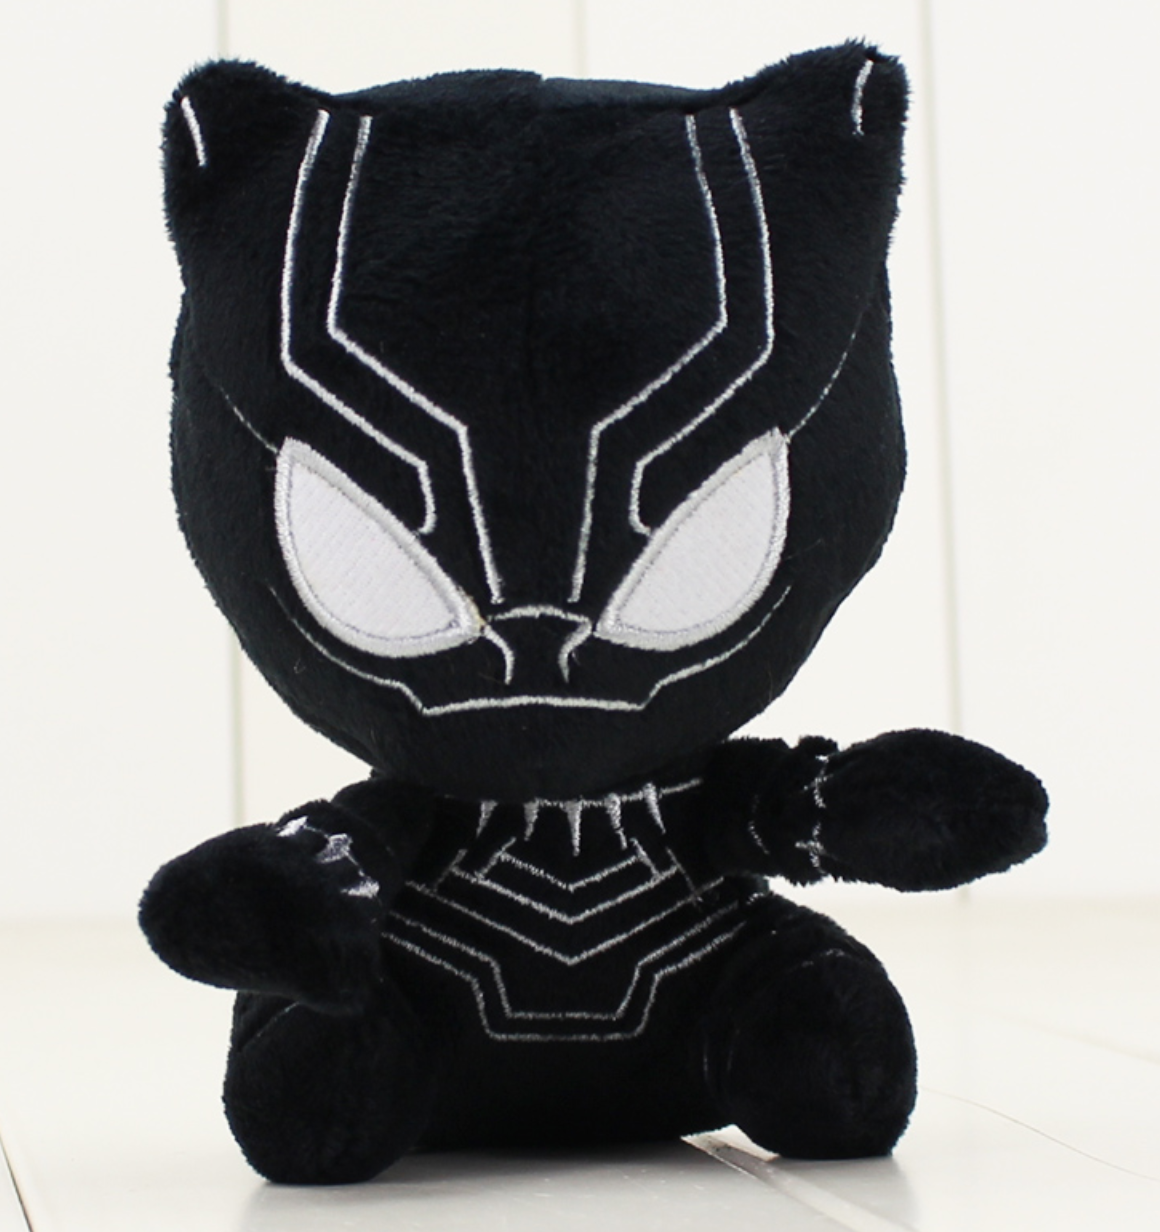 Black Panther Action Figure Plush Doll Stuffed Teddy Puppets Gift Superhero